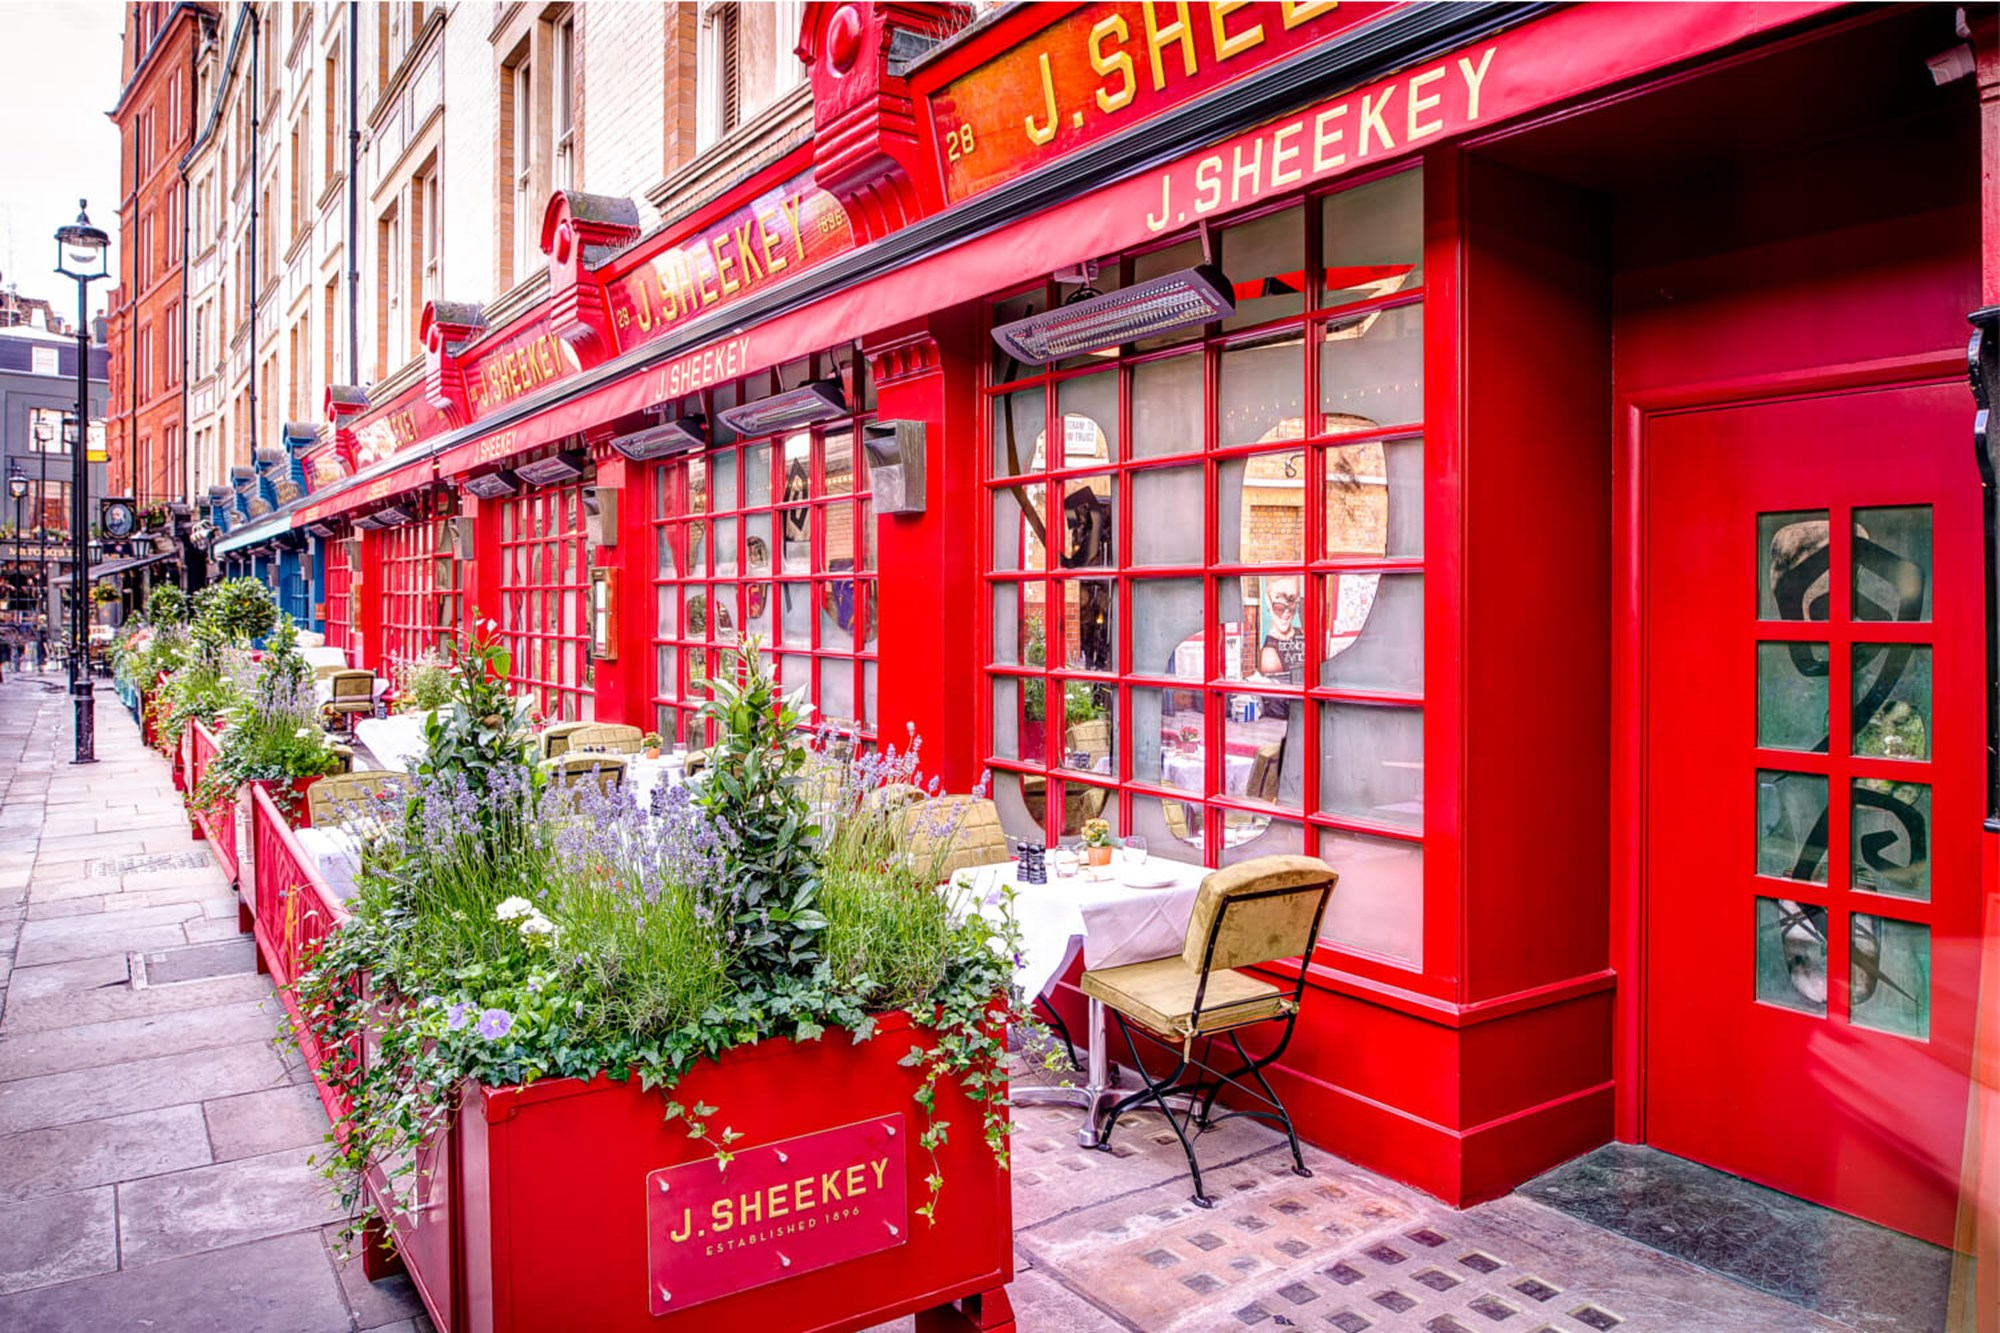 J Sheekey is an iconic London restaurant located in Leicester Square which serves the finest fish